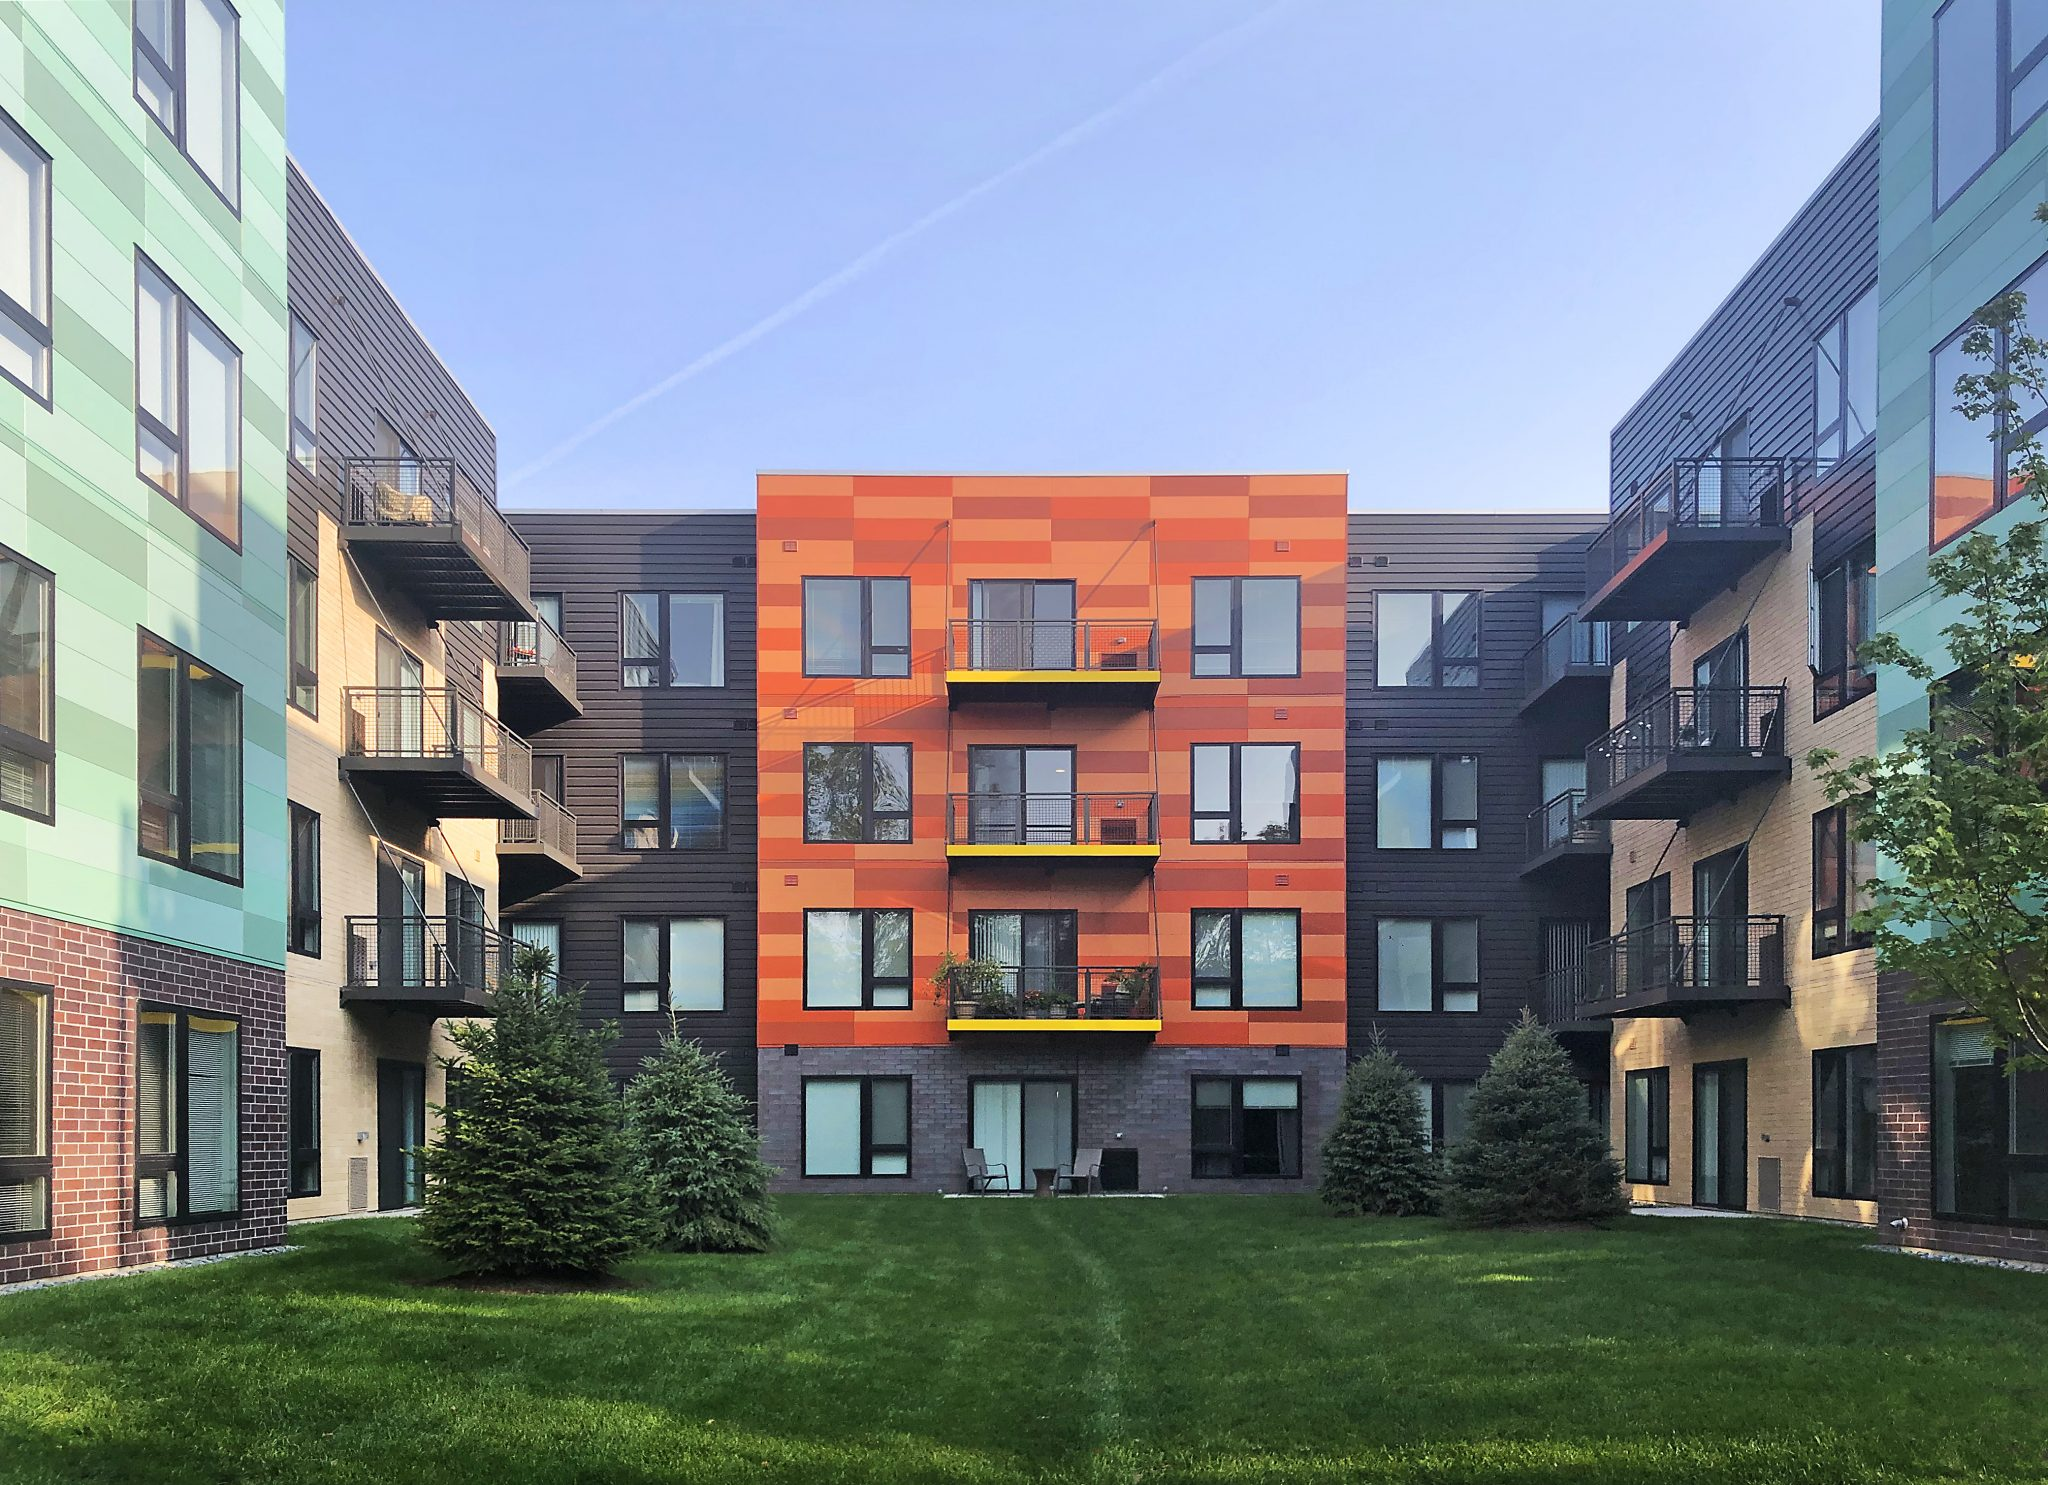 Colorful Residence Courtyard with Orange and teal facade and balconies on a grassy yard